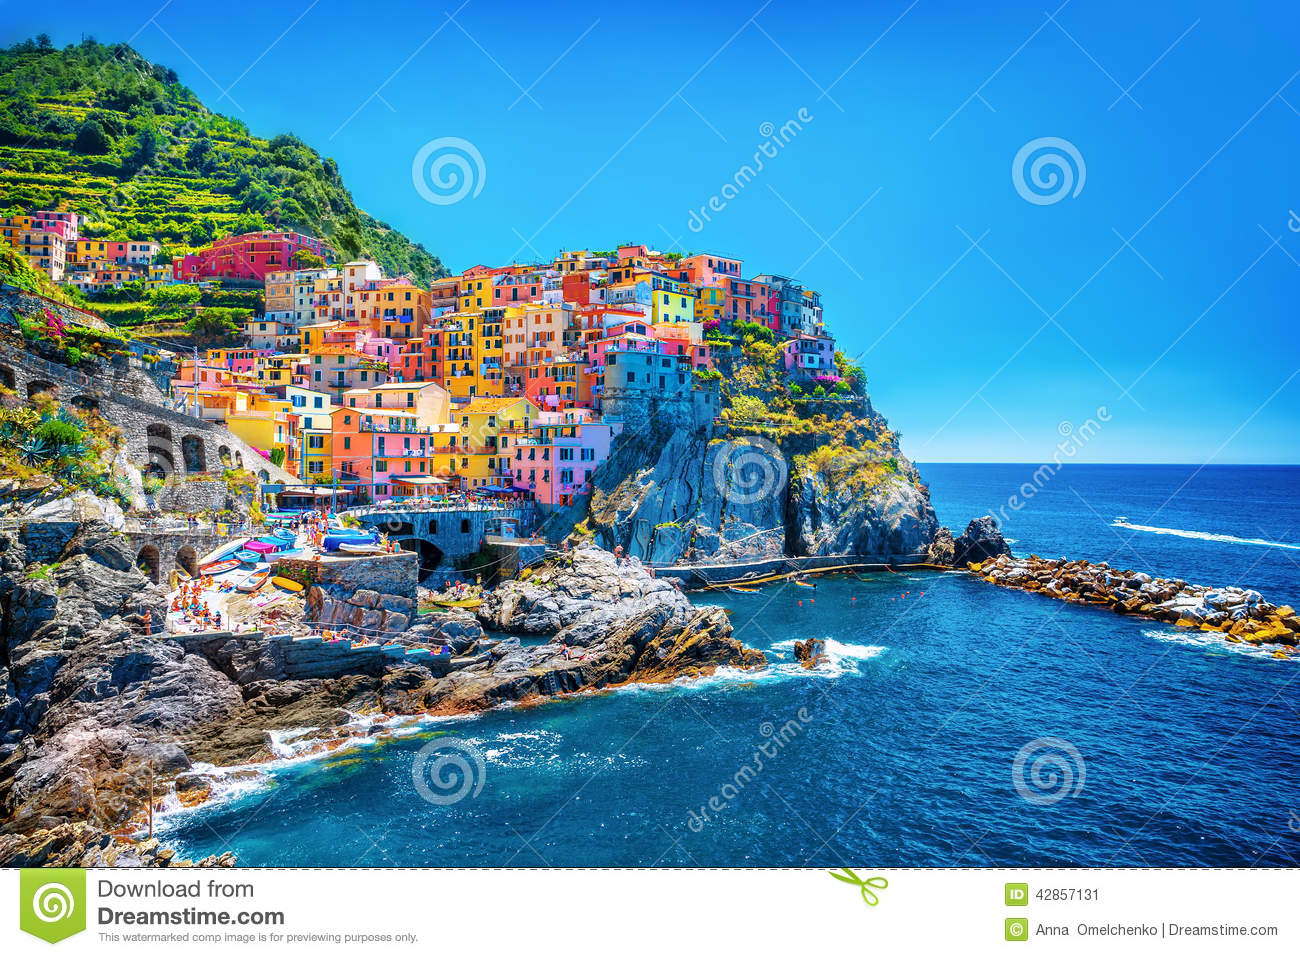 Stock Photo Beautiful Colorful Cityscape Mountains Over Mediterranean Sea Europe Cinque Terre Traditional Italian Architecture Image42857131 together with Visa St s Or Passport Signs Of Immigration Vector 25592889 together with Paristhe City Of Lights St  Vector 8342769 besides London Winter Seamless Pattern Christmas Doodles Black Vector 22980844 as well Golden Ornate  pass Rose Vector 1698674. on vintage vacation home plans